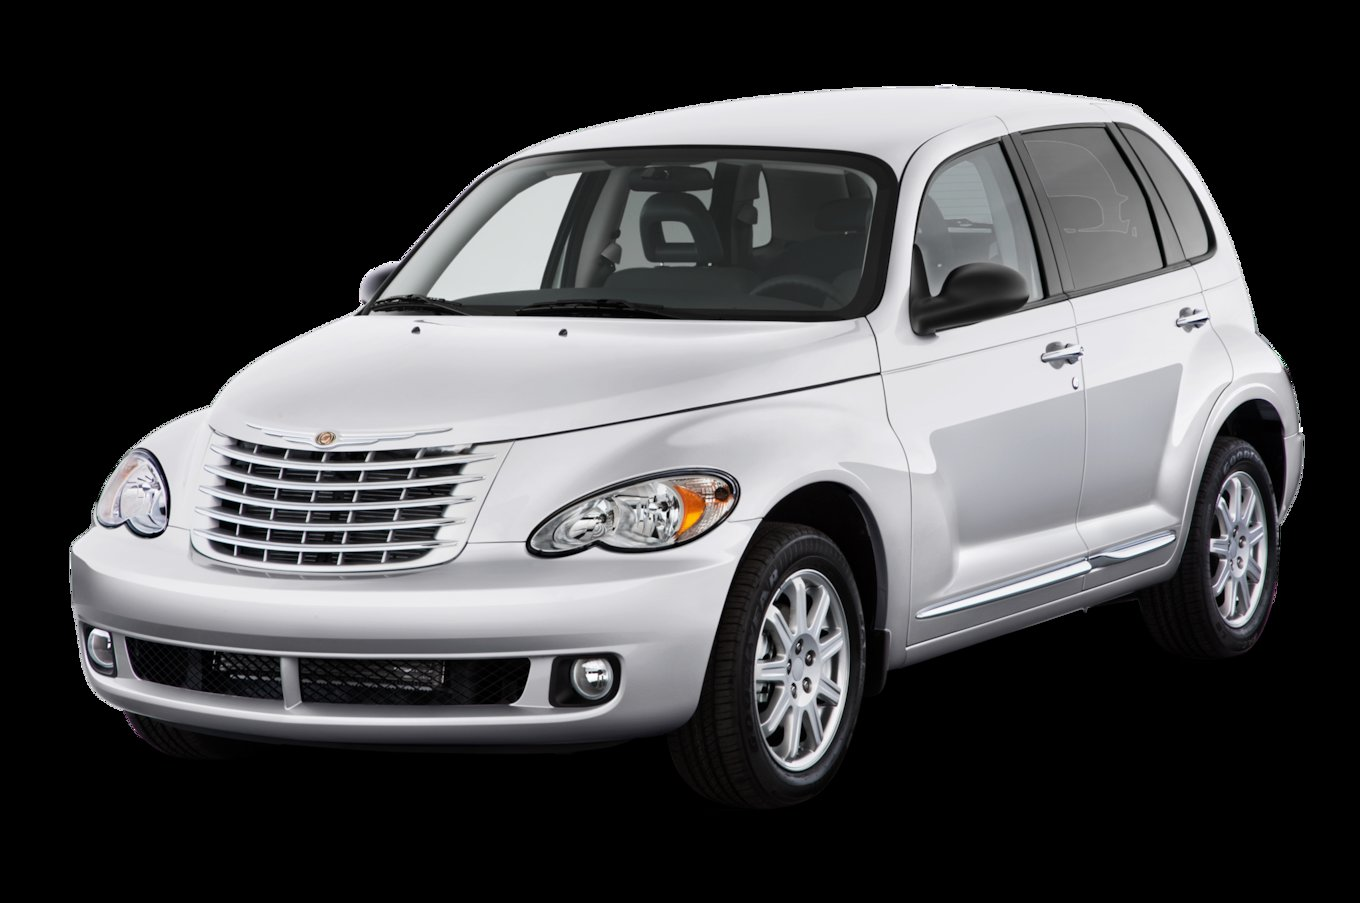 Latest 2010 Chrysler Pt Cruiser Reviews Research Pt Cruiser Free Download